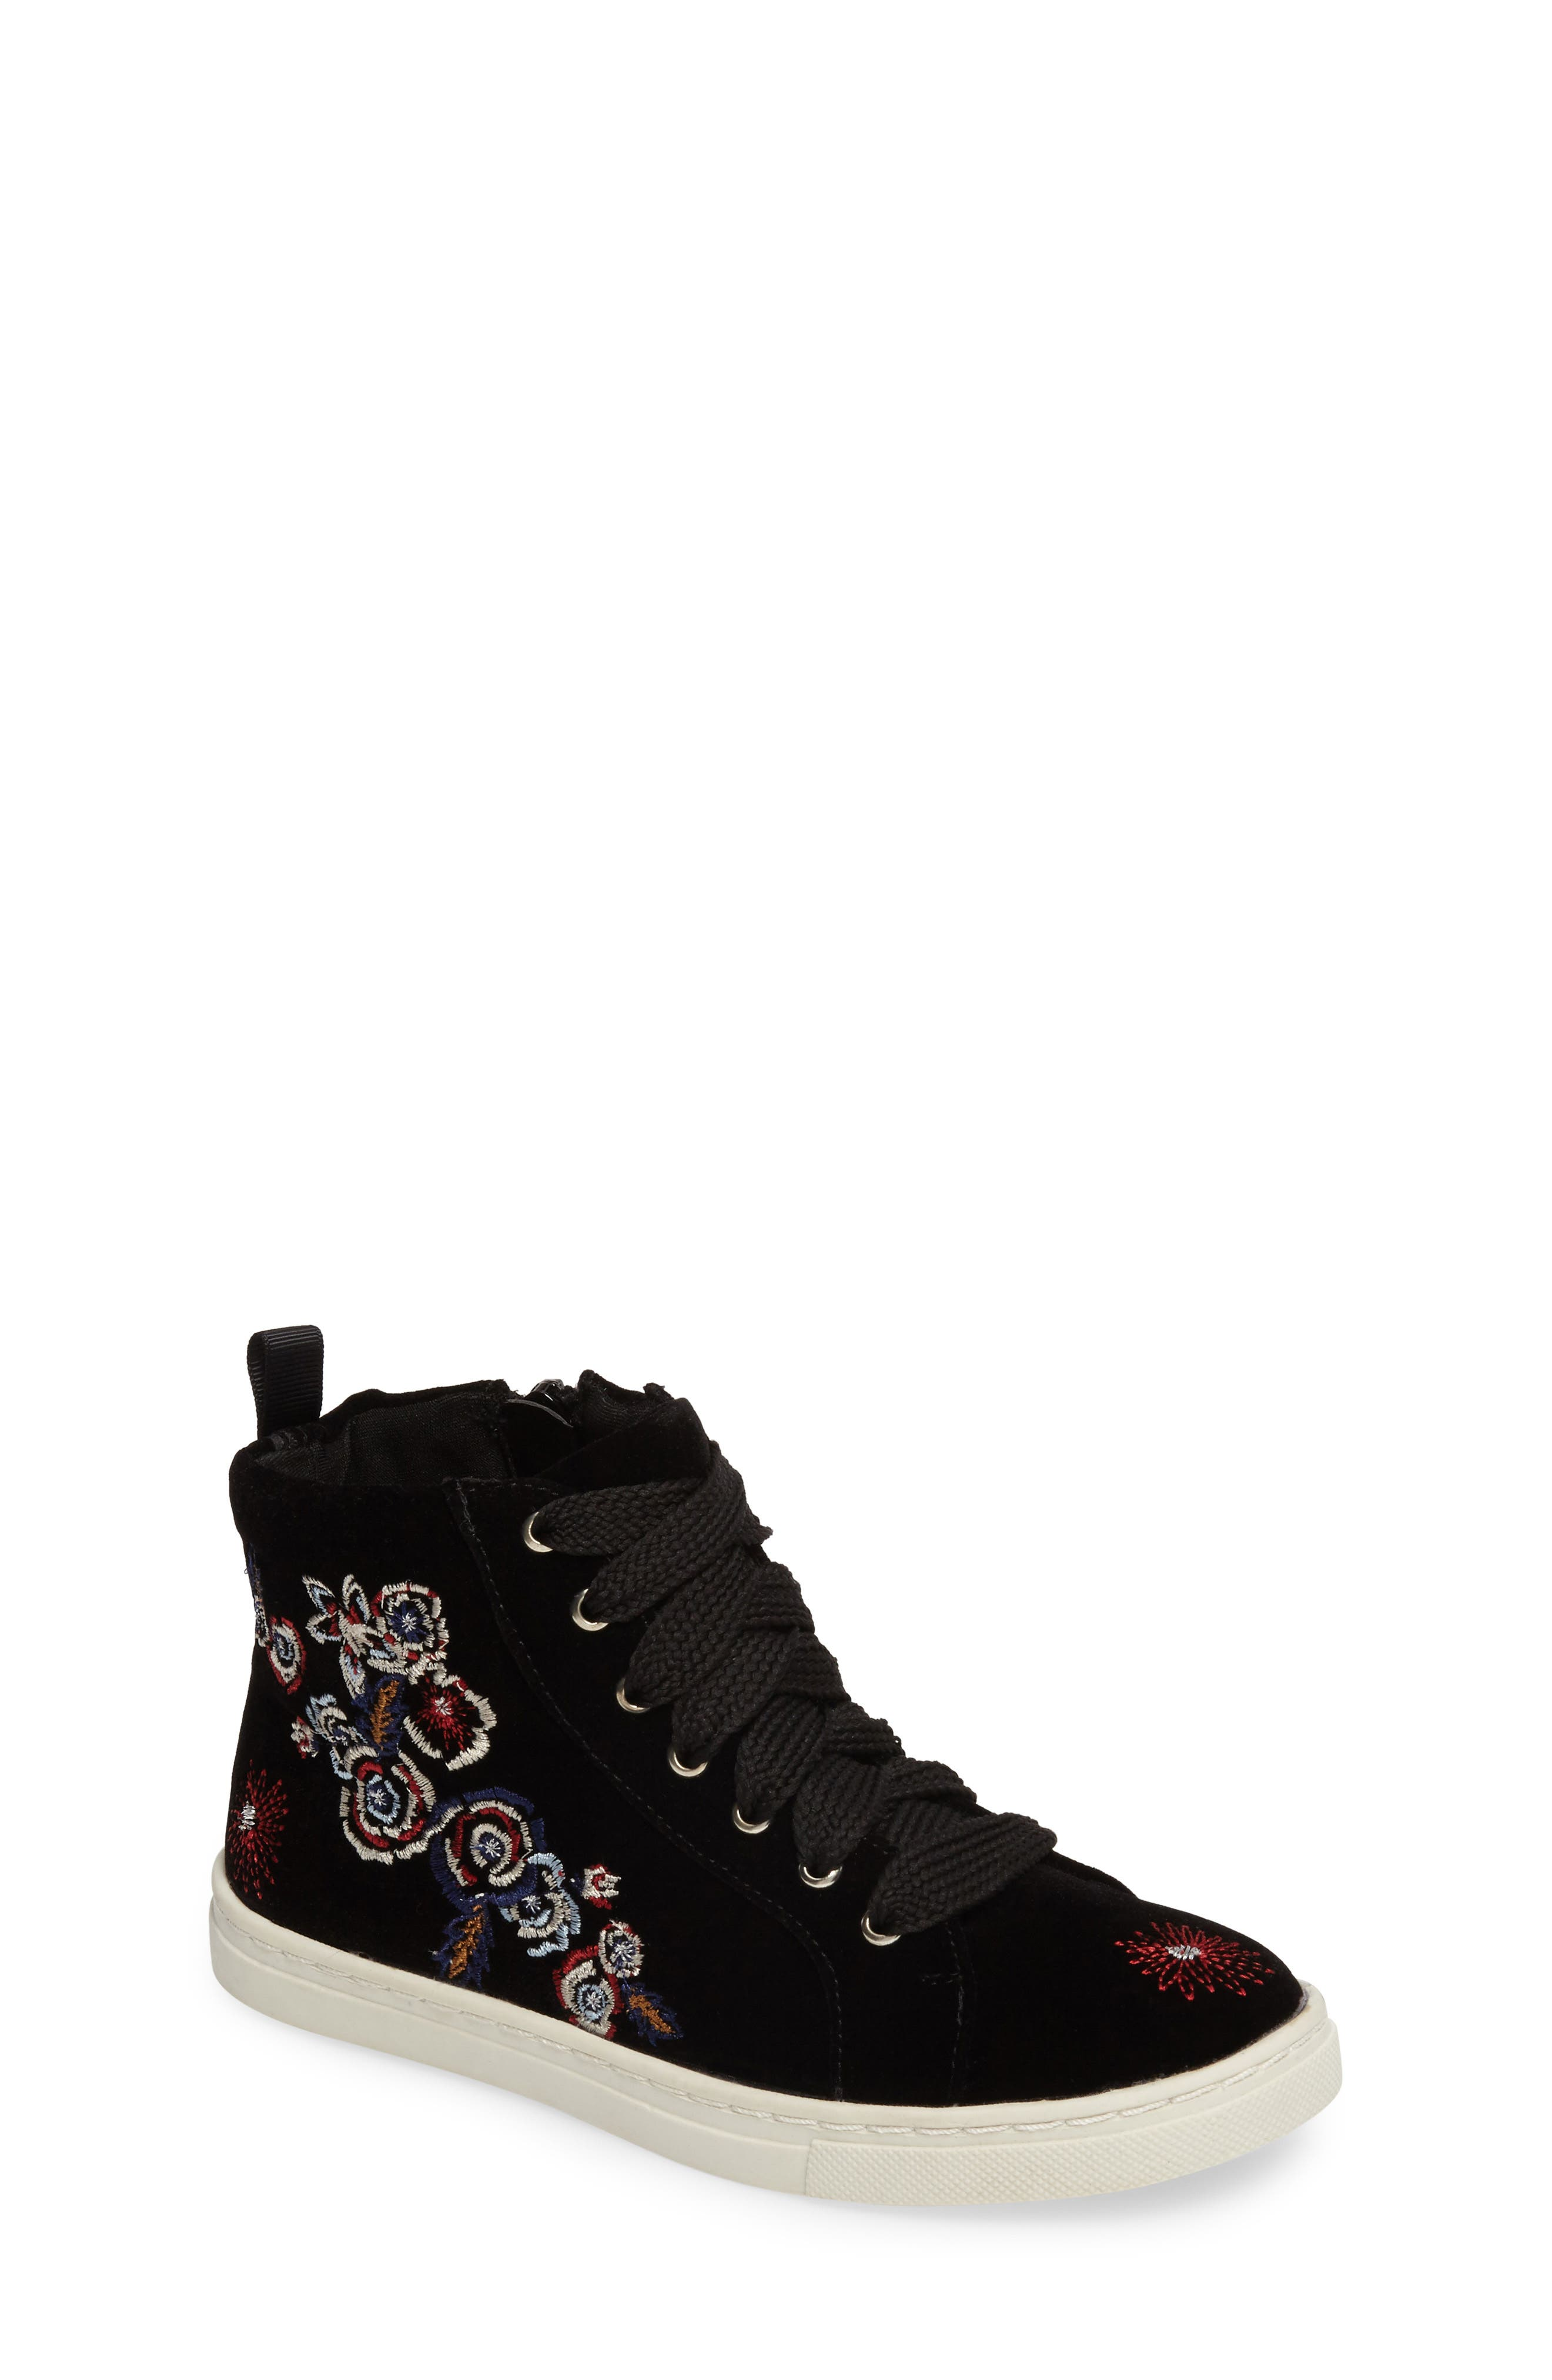 Zowen Embroidered High Top Sneaker,                             Main thumbnail 1, color,                             Black Multi Floral